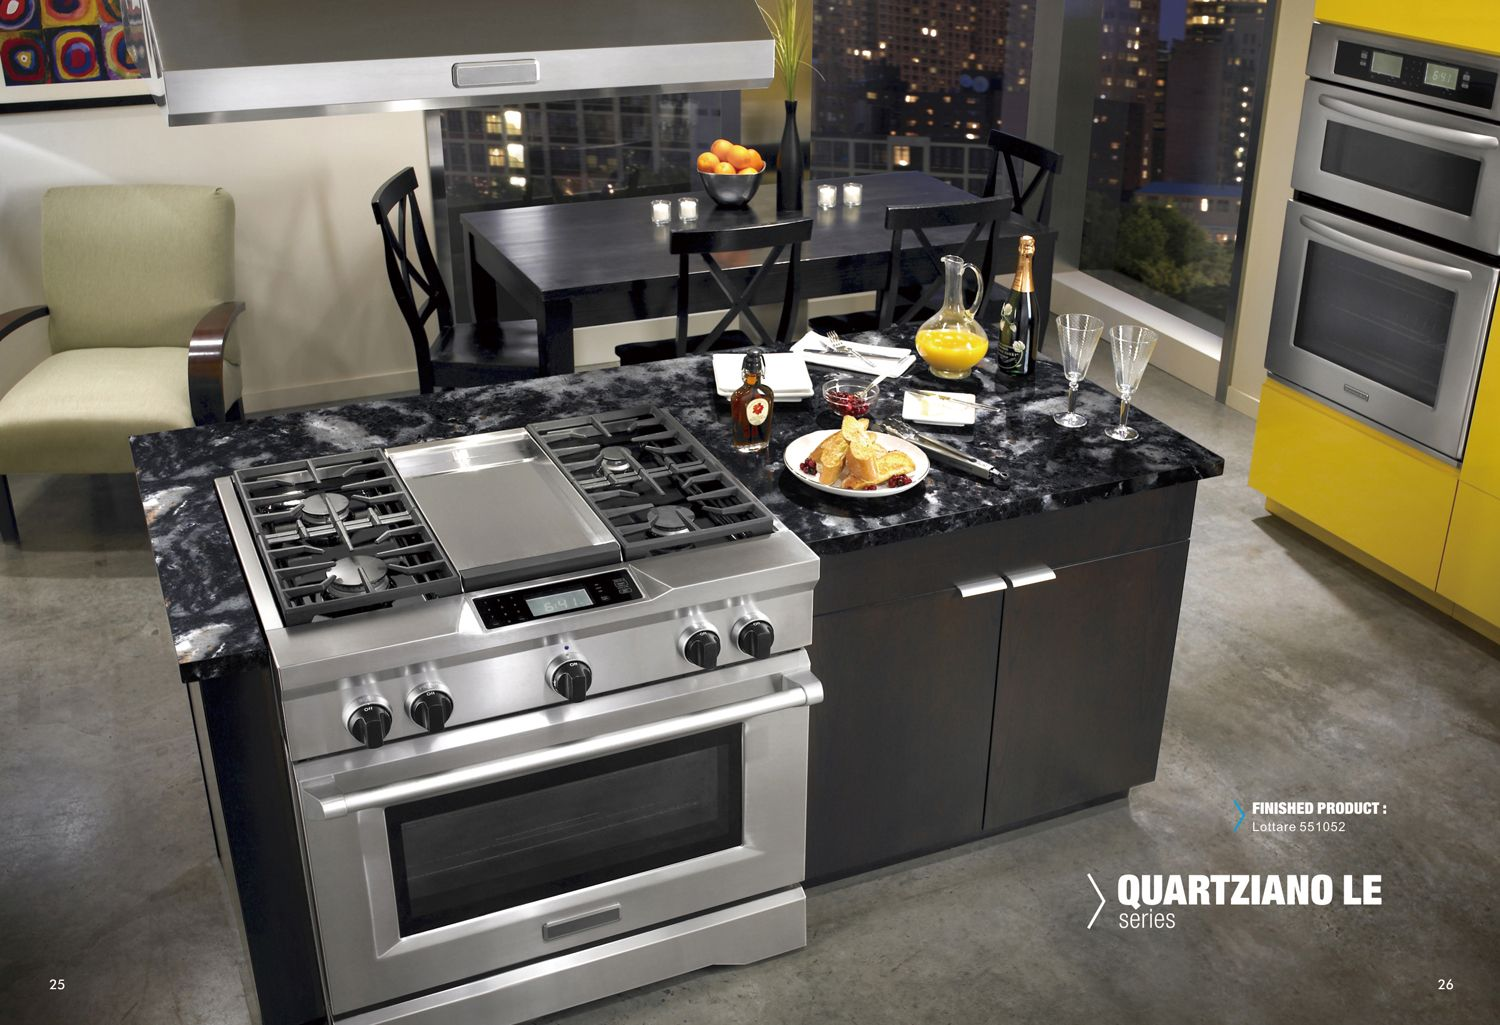 www.stainlesssteeltile.com likes this inspirational kitchen design